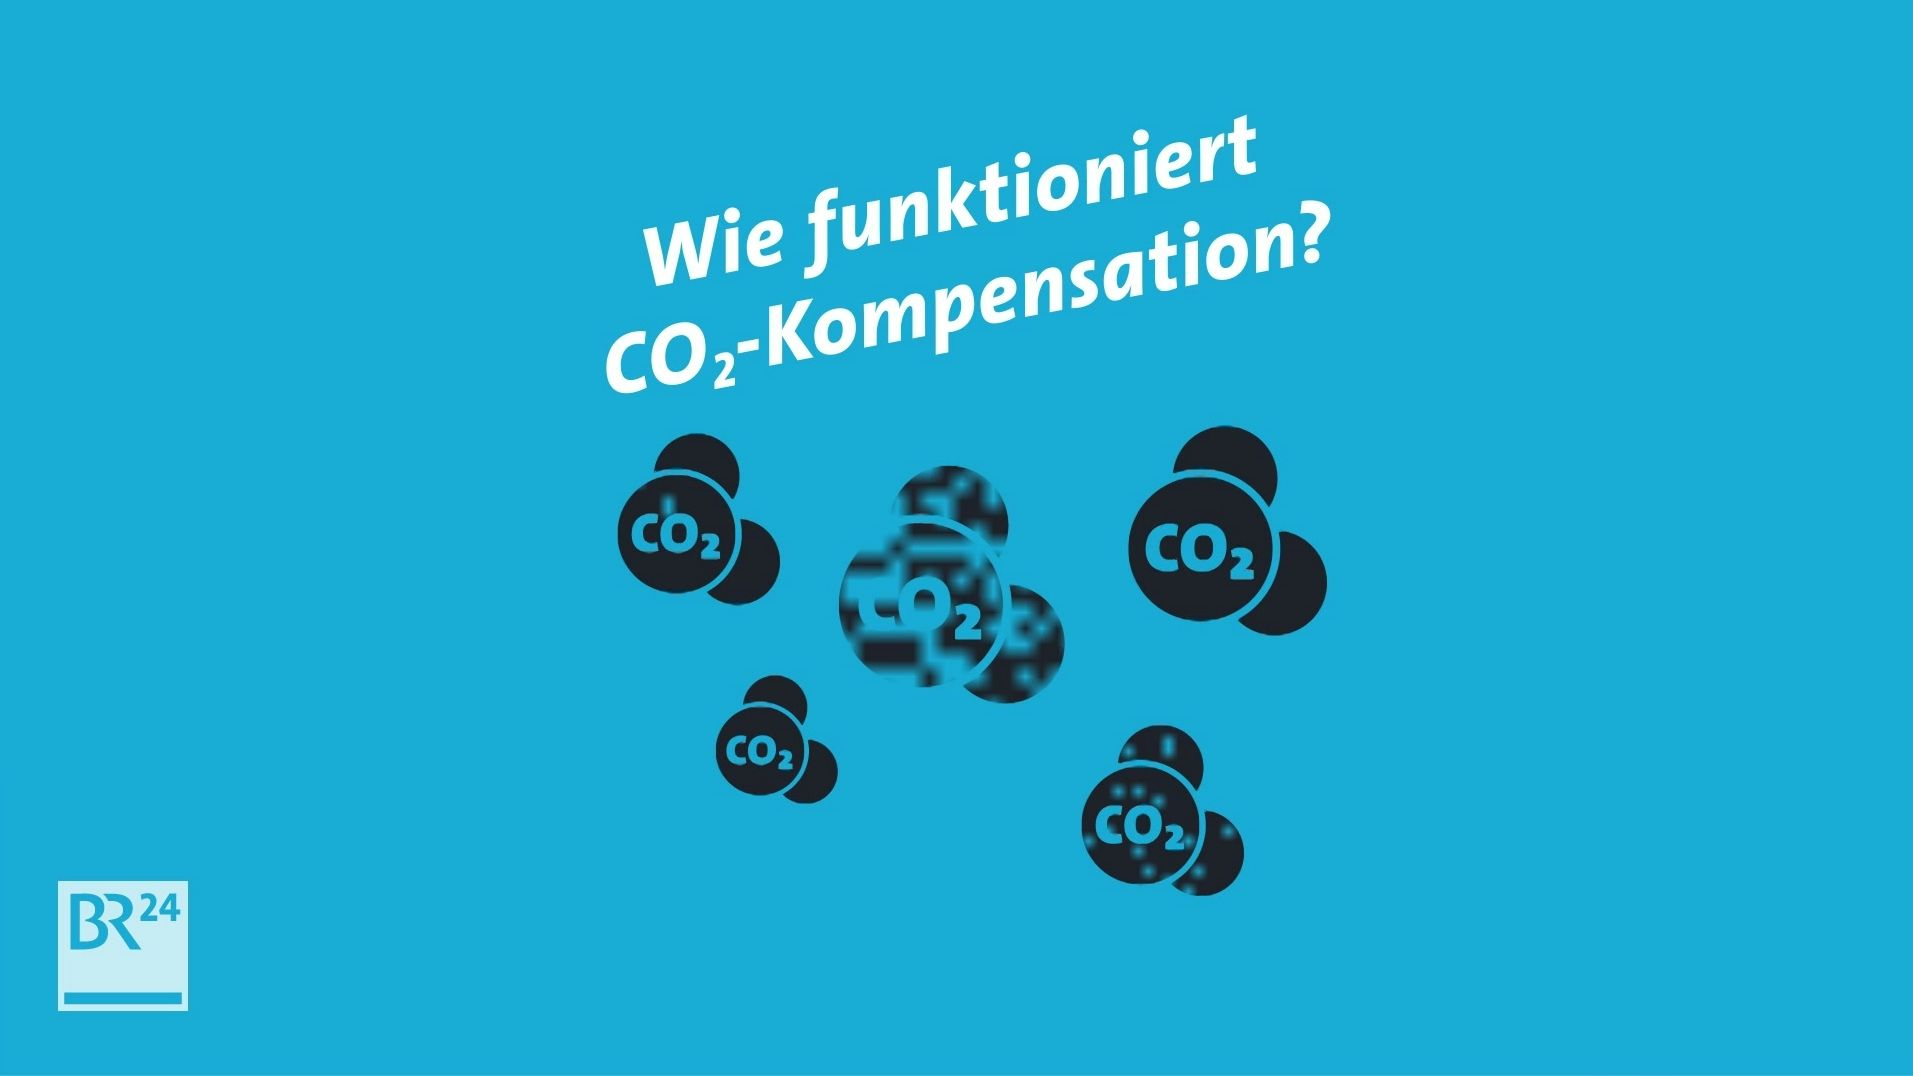 Wie funktioniert freiwillige CO2-Kompensation?